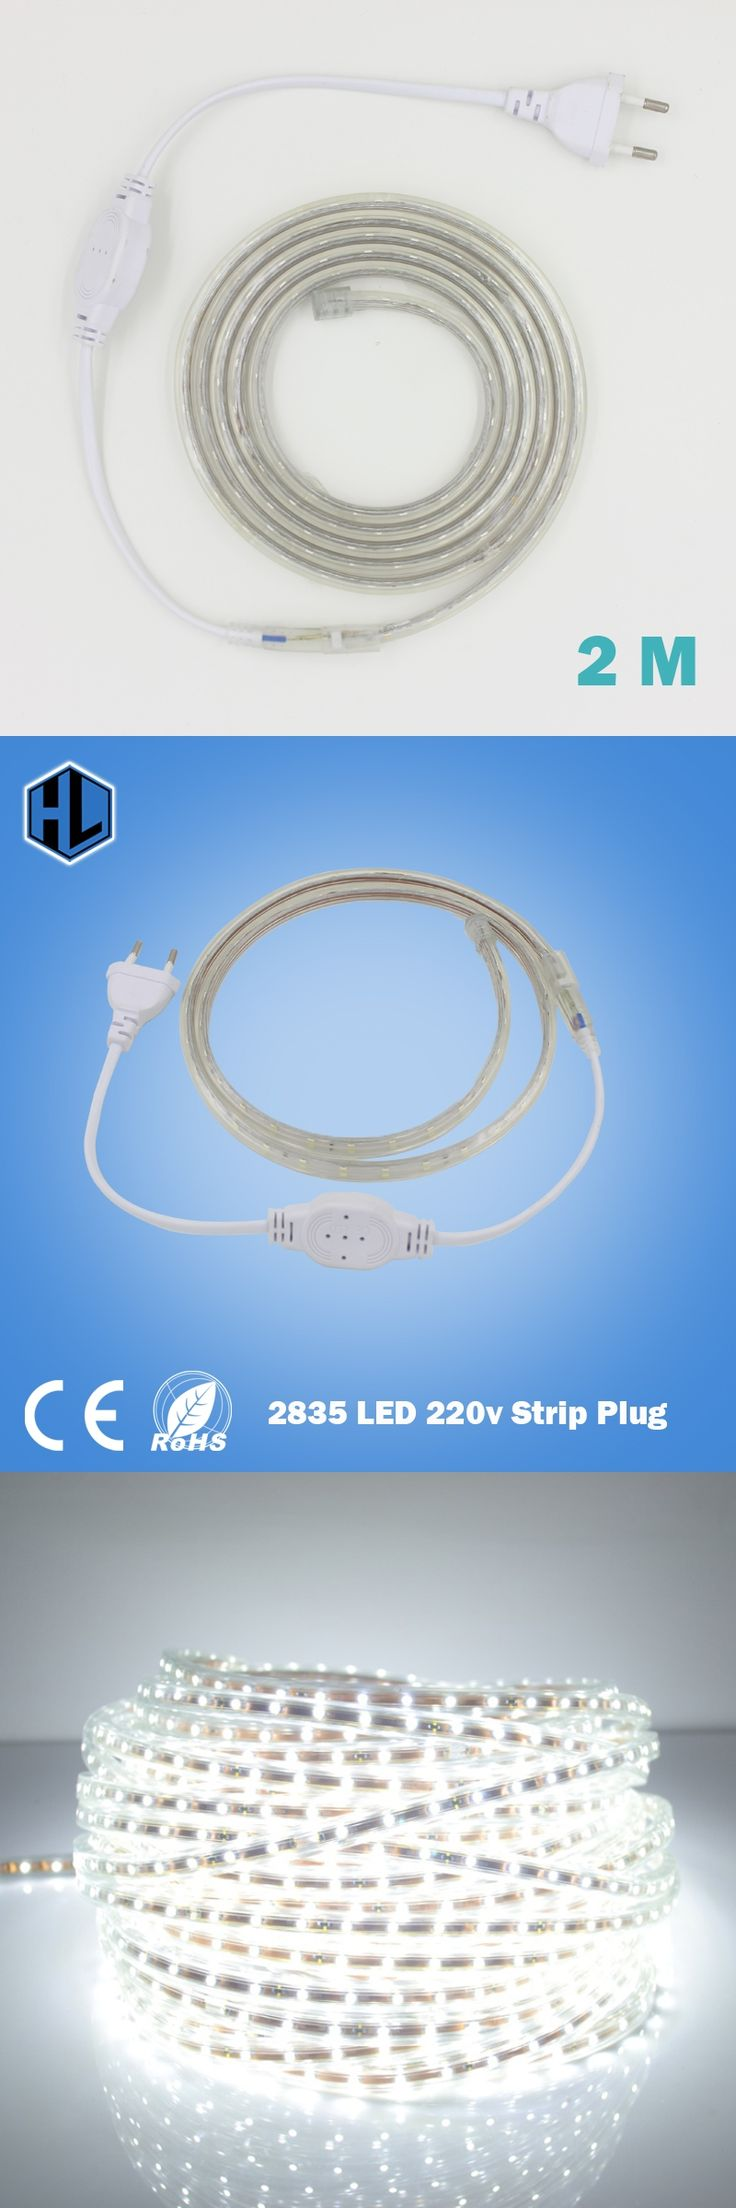 2M 220V High Voltage 2835 Led Strip Flexible Light+EU Power Plug, Warm/Cold White RGB Strip Diode Tape Waterproof LED Strip